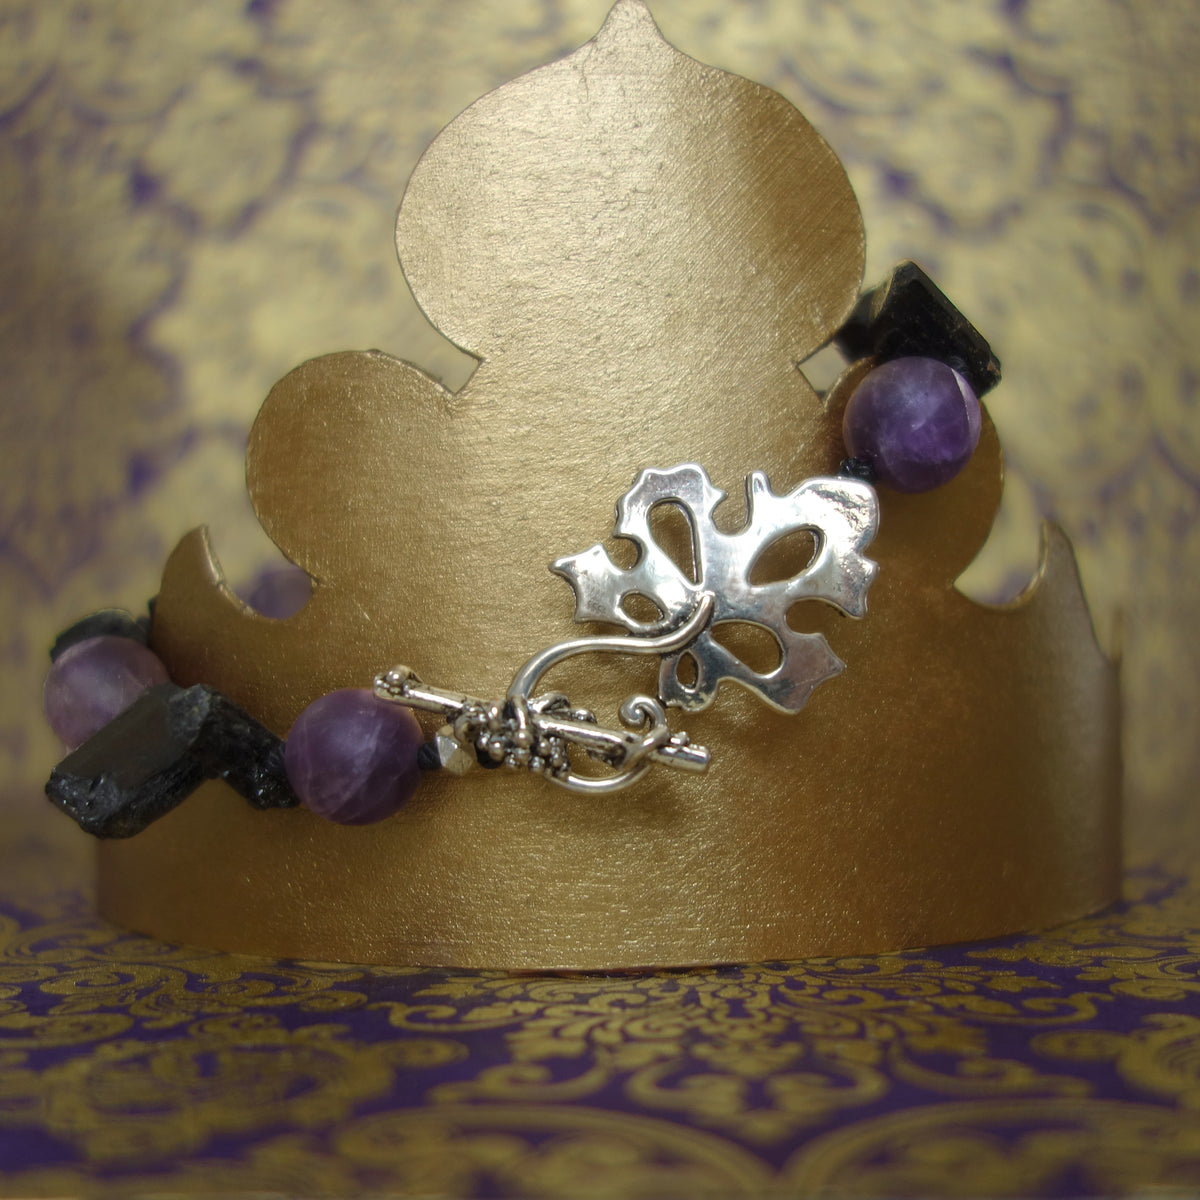 Amethyst and Black Tourmaline bracelet